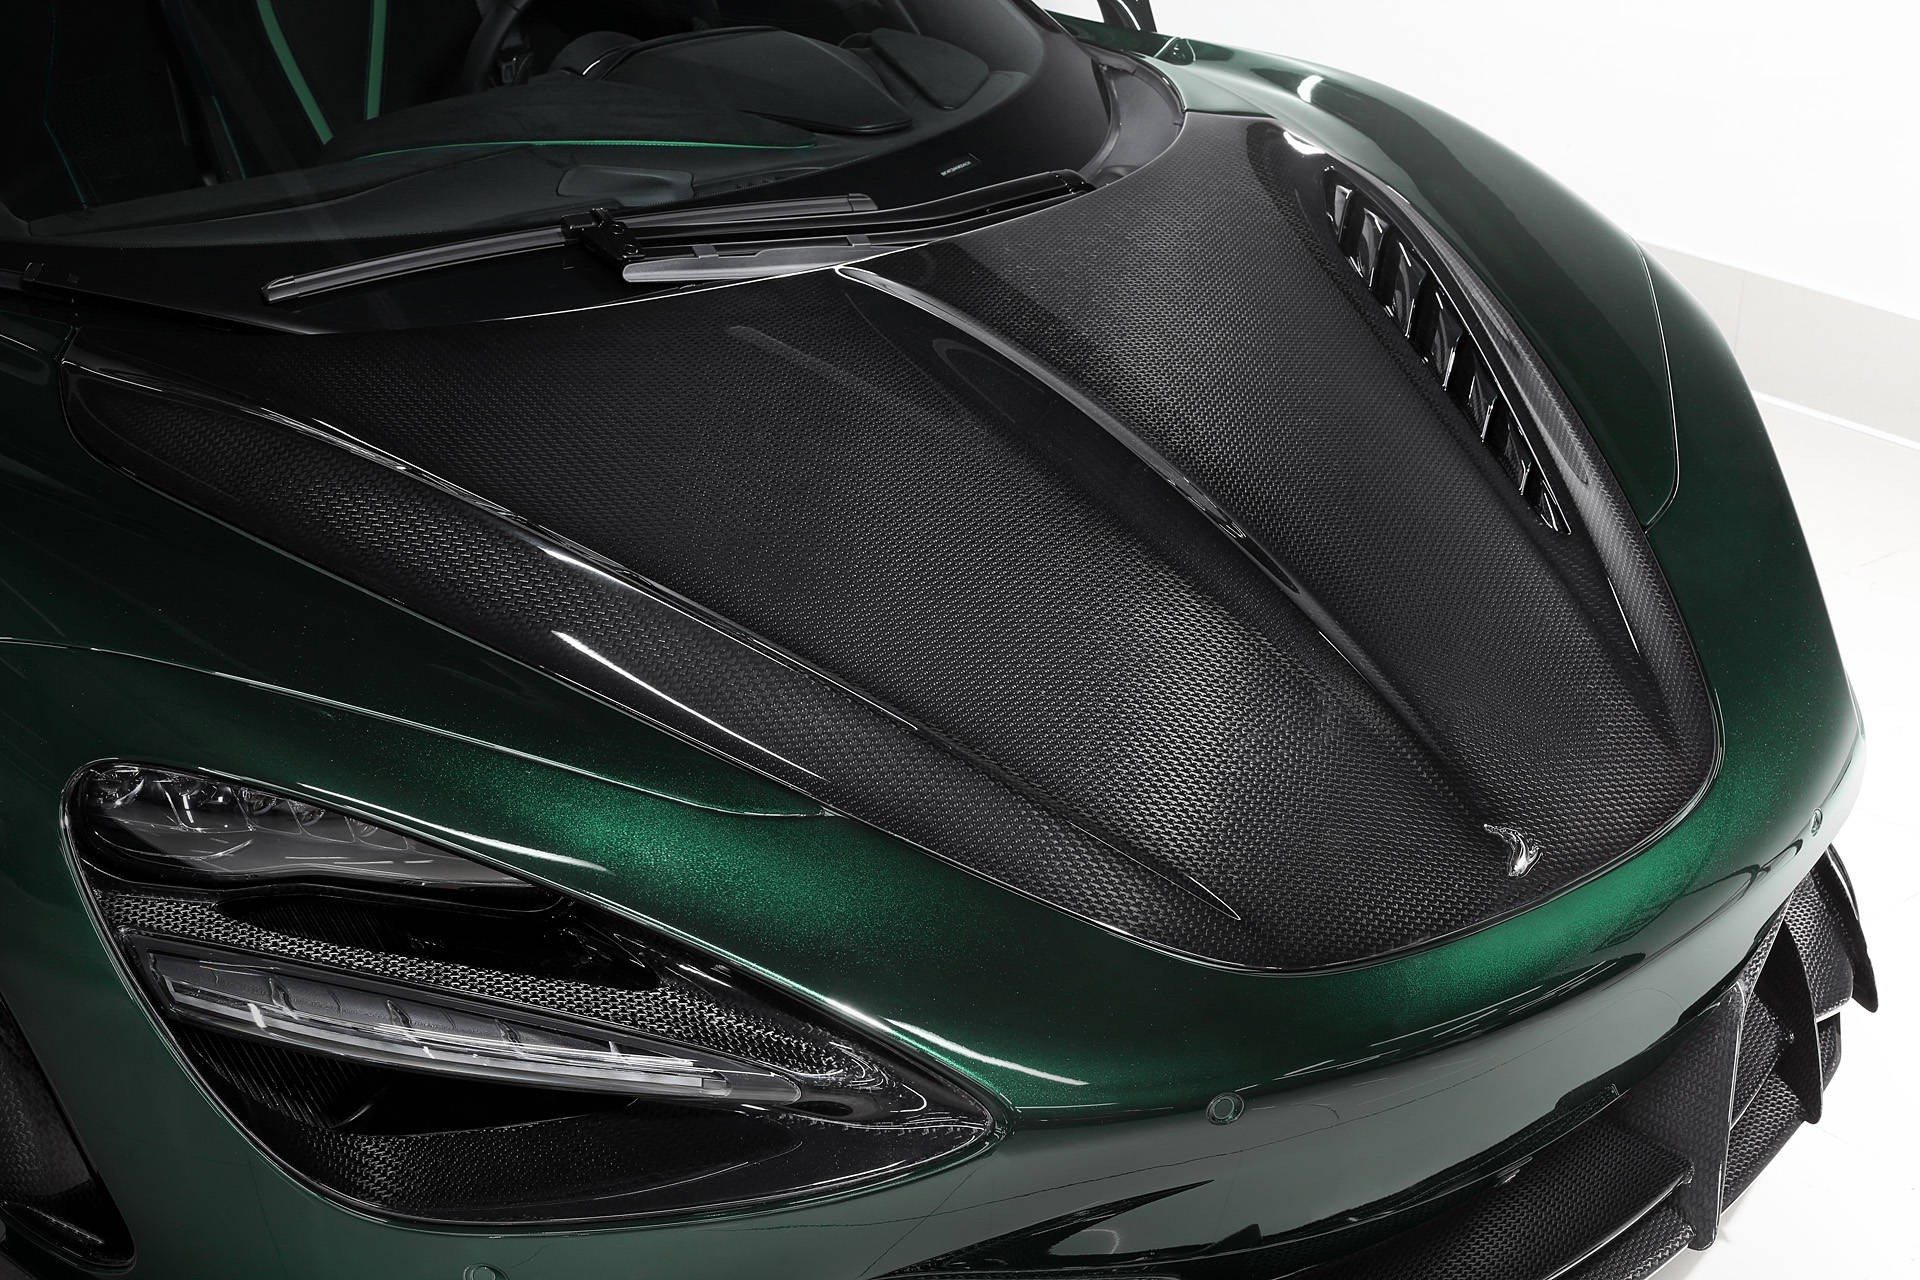 McLaren-720S-Spider-Fury-by-TopCar-for-sale-25